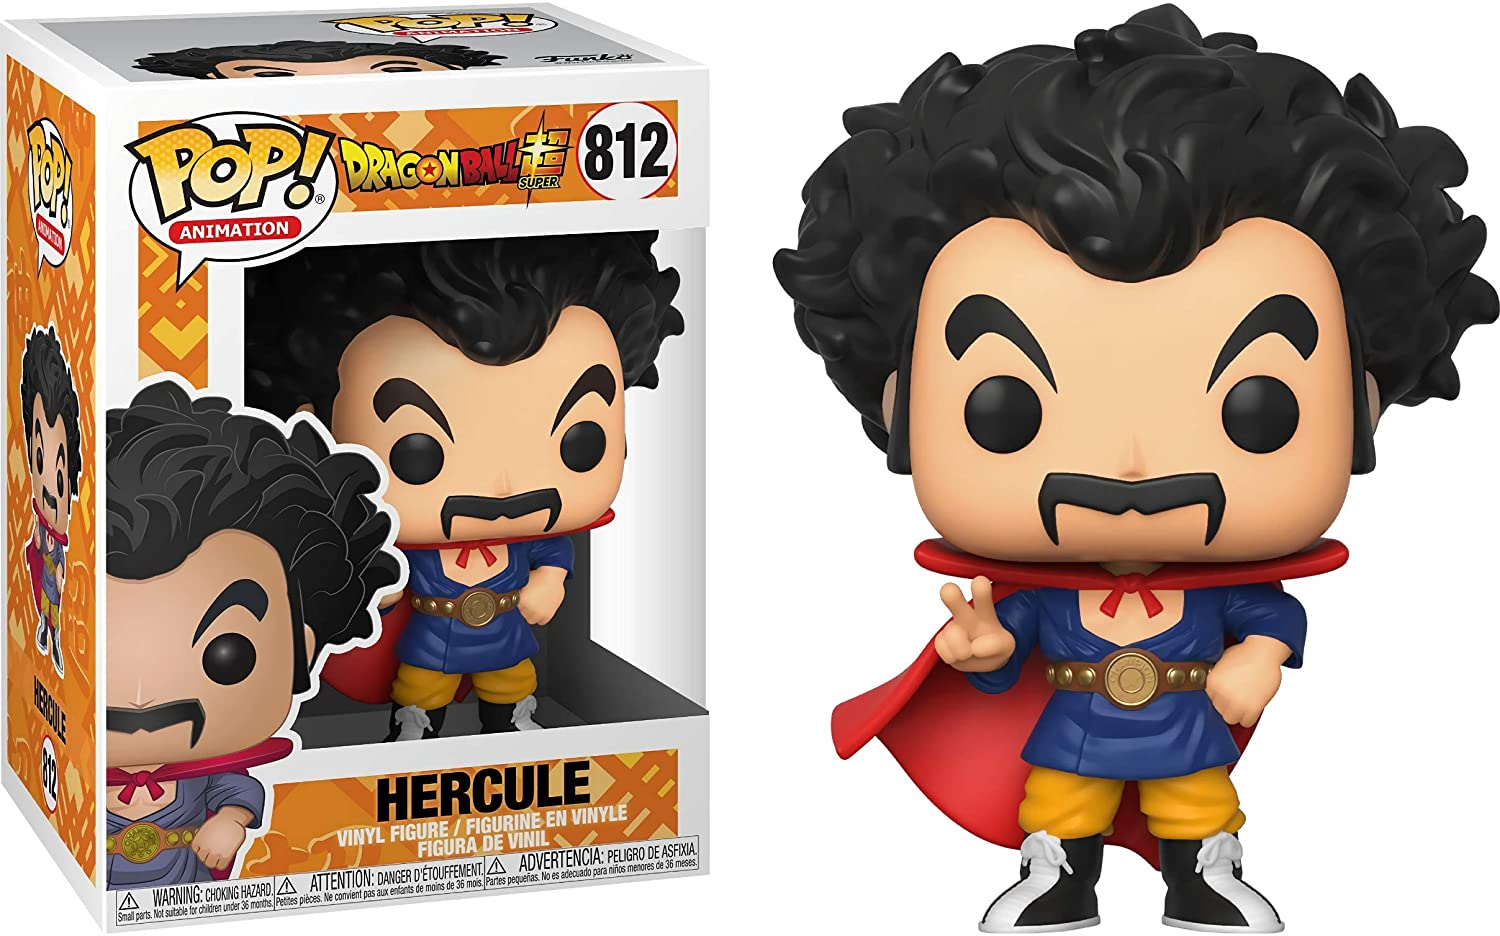 POP! Animation: Dragon Ball Super - Hercule #812 Vinyl Figure